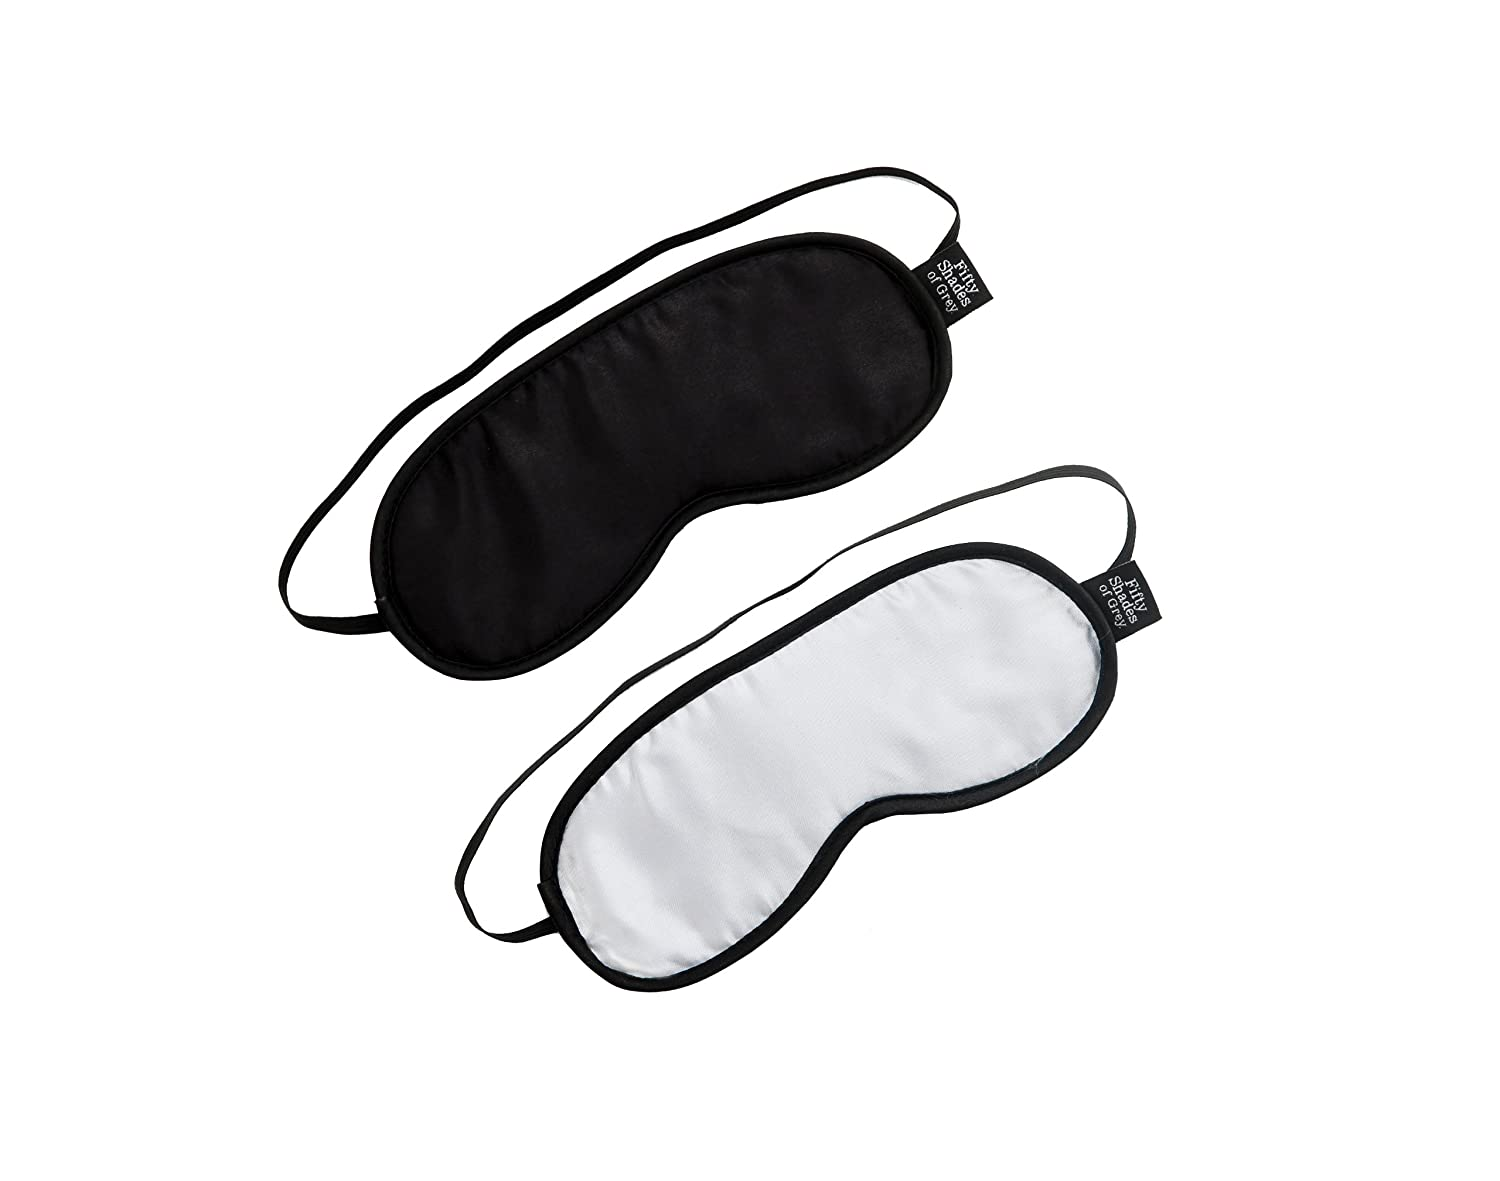 Fifty Shades Of Grey No Peeking Blindfold Twin Pack dolce piccante сорочка голубая с открытой спинкой